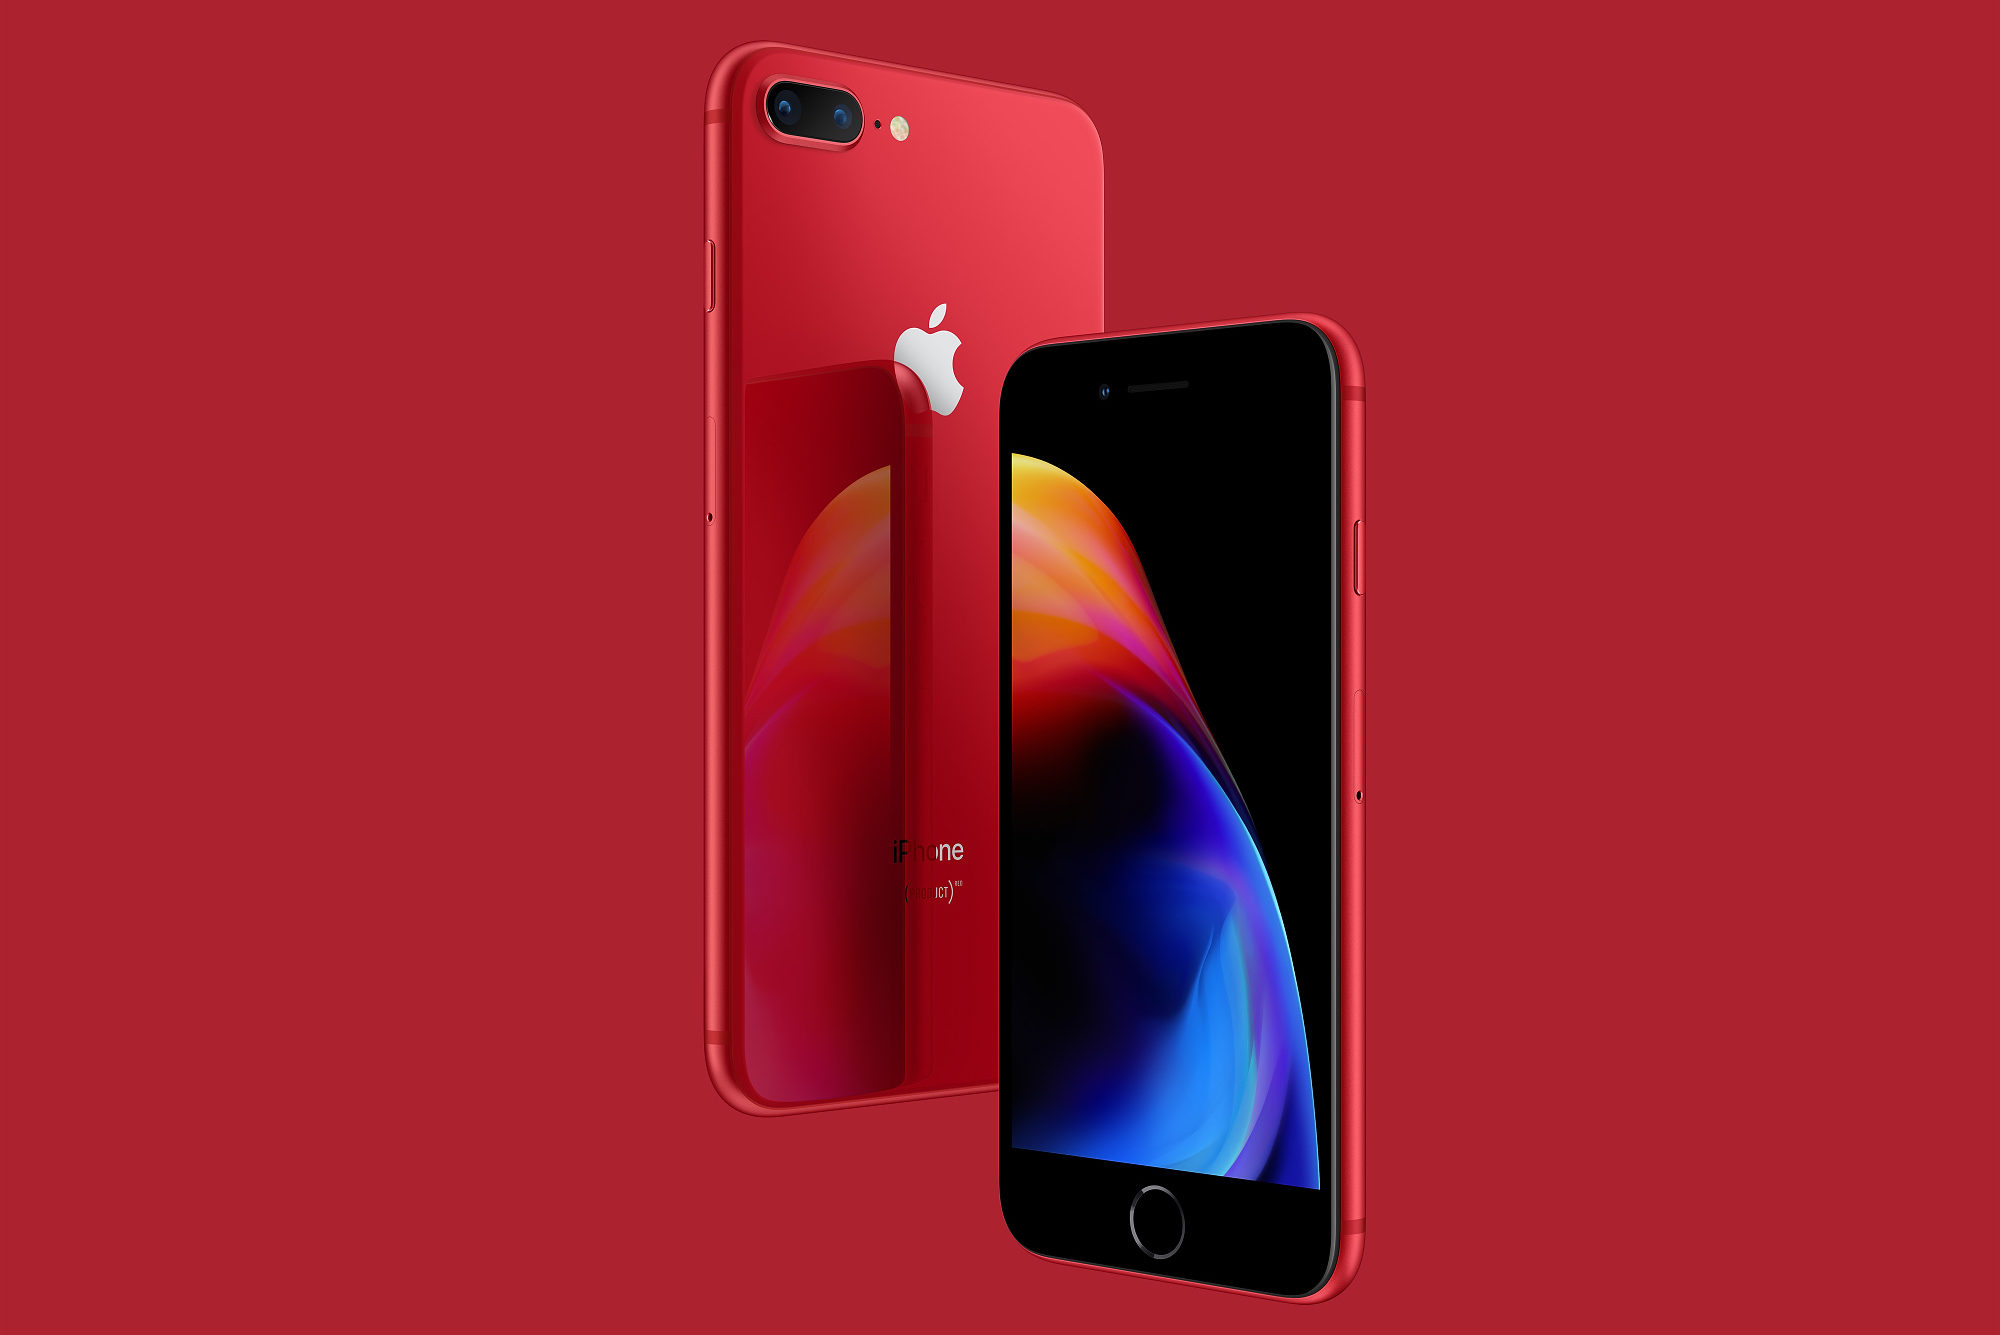 Apple iPhone SE 2 Release Date, Specs, Variants Second Version to be Launched in Late 2020